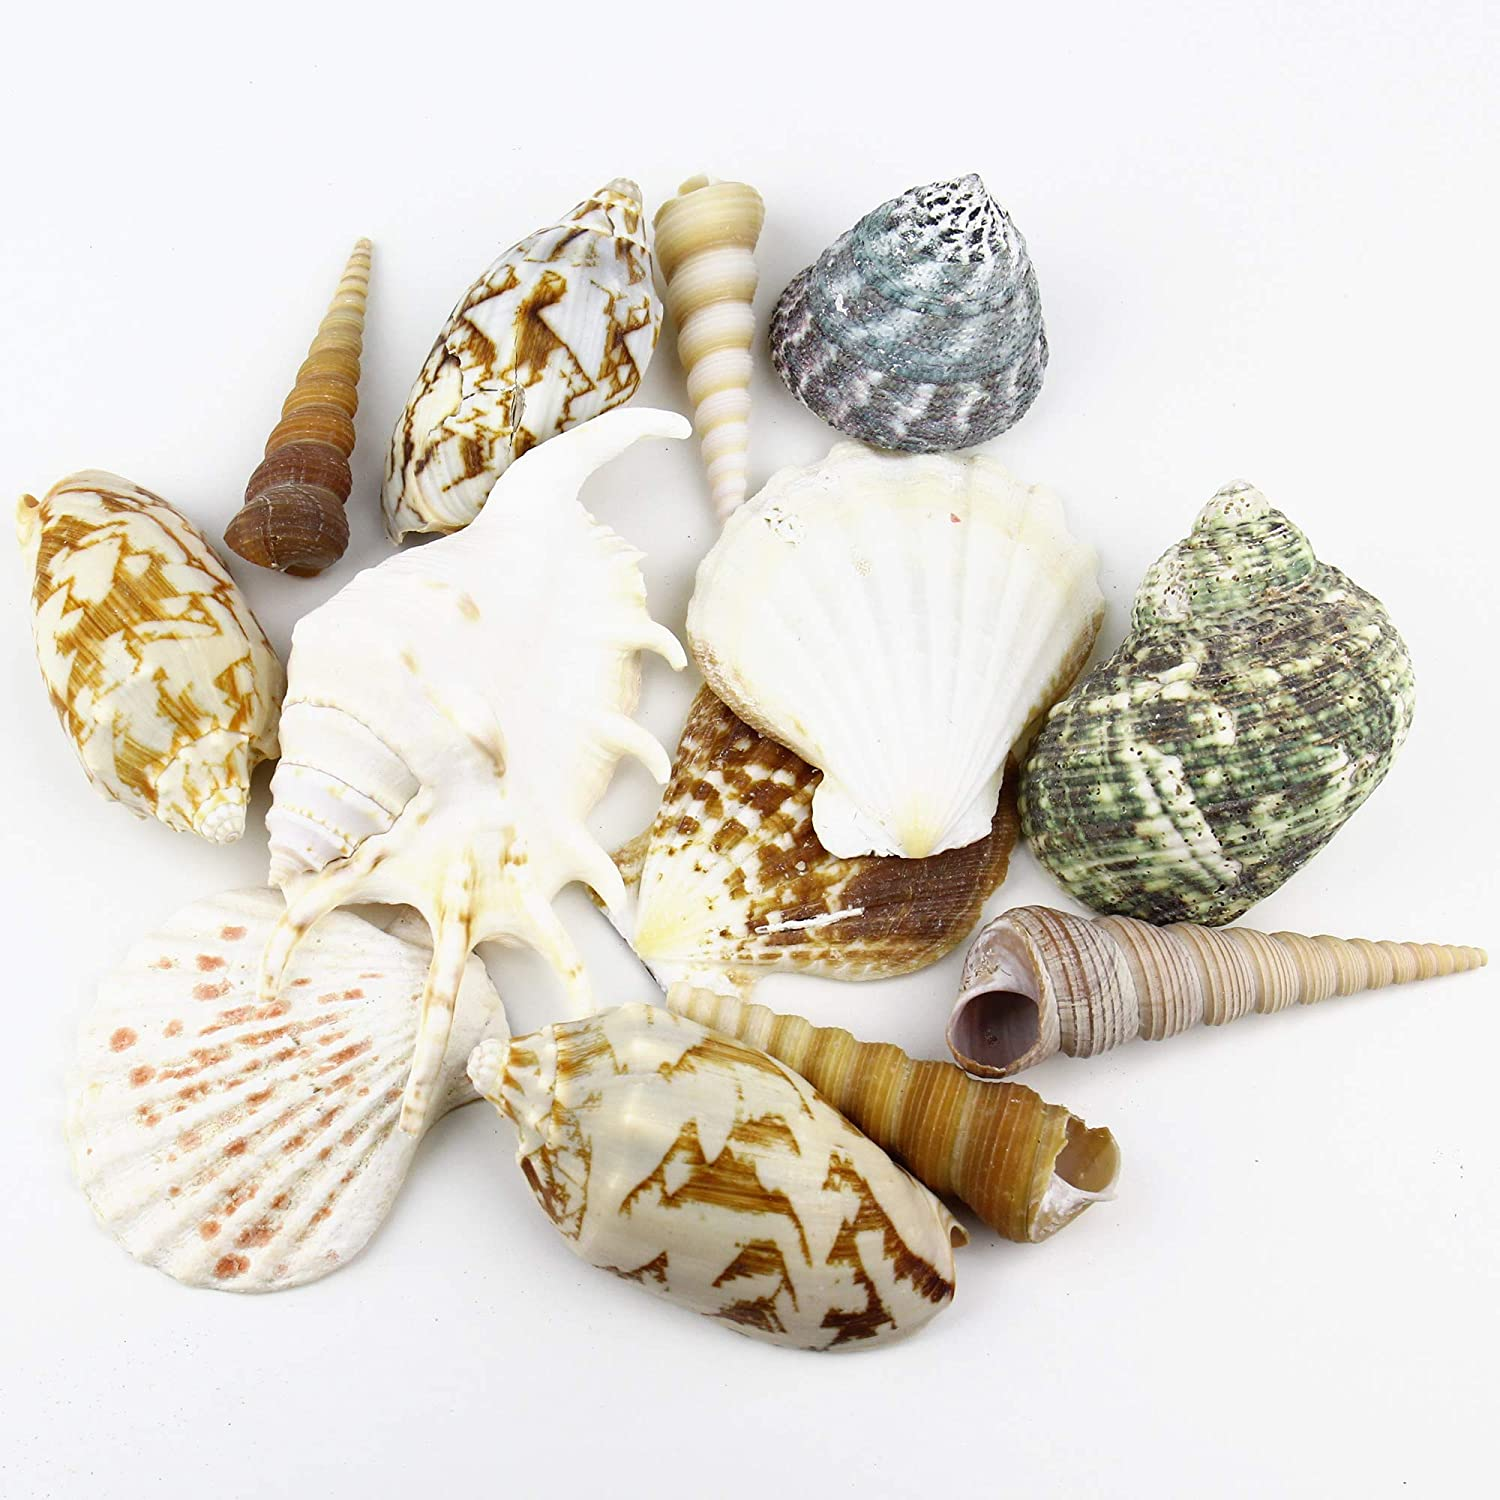 """CYS EXCEL Approx 15 sea Shells, Sized at 3"""" to 4"""", Mixed Beach Seashells, Arious Sizes Natural Seashells for Fish Tank, Vase Filler Sea Shells, Home Decorations, Wedding Décor"""